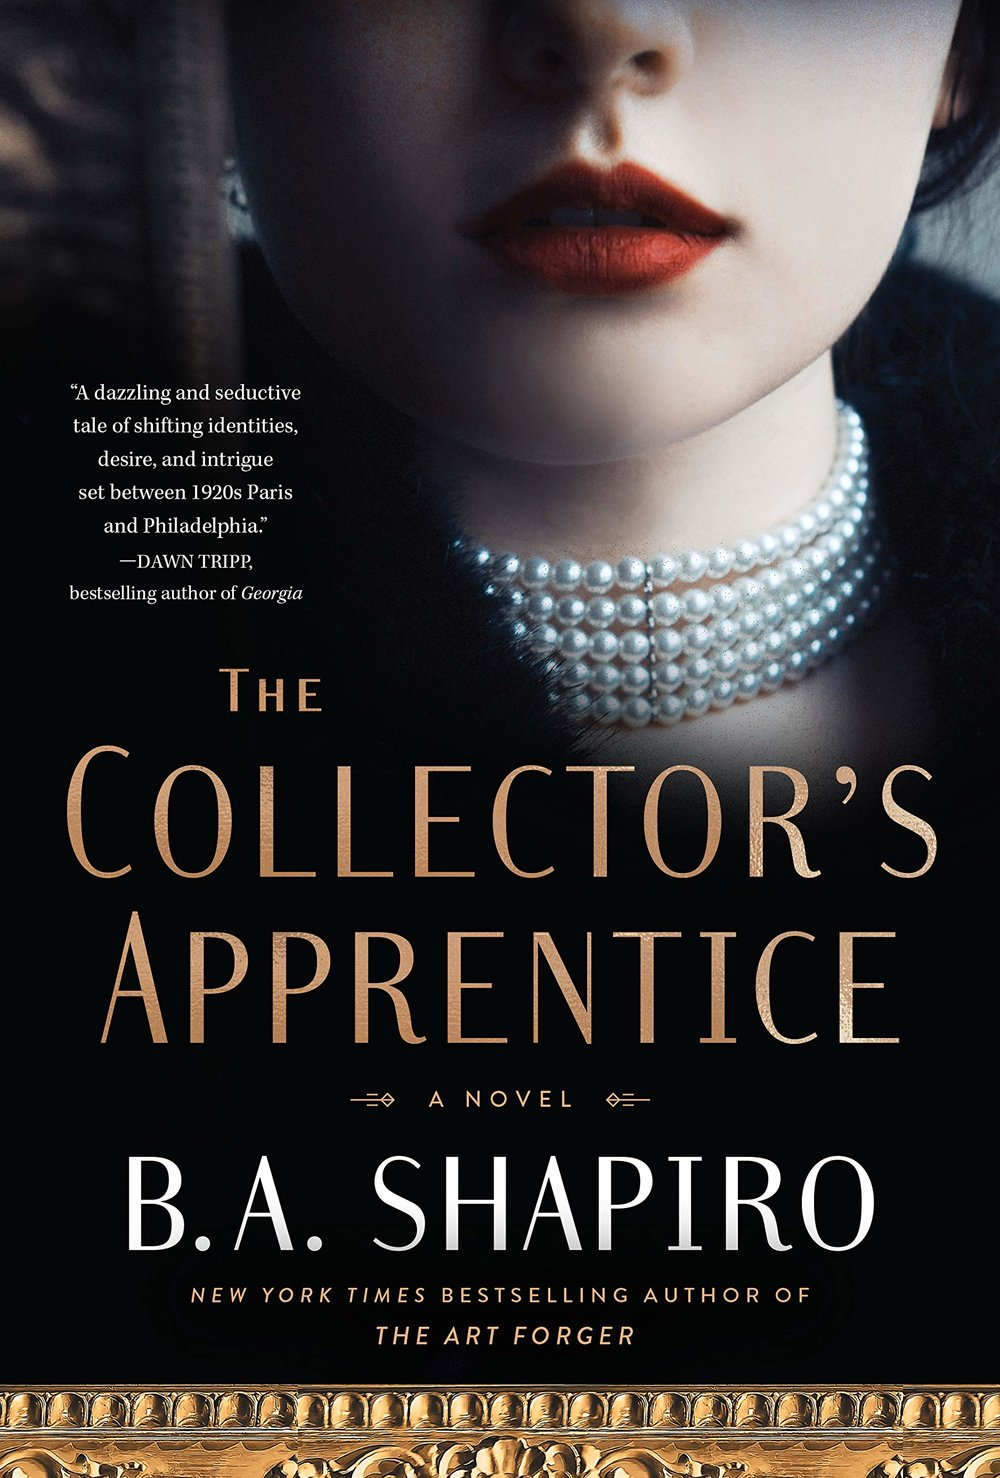 The Collector's Apprentice by B.A. Shapiro.jpg